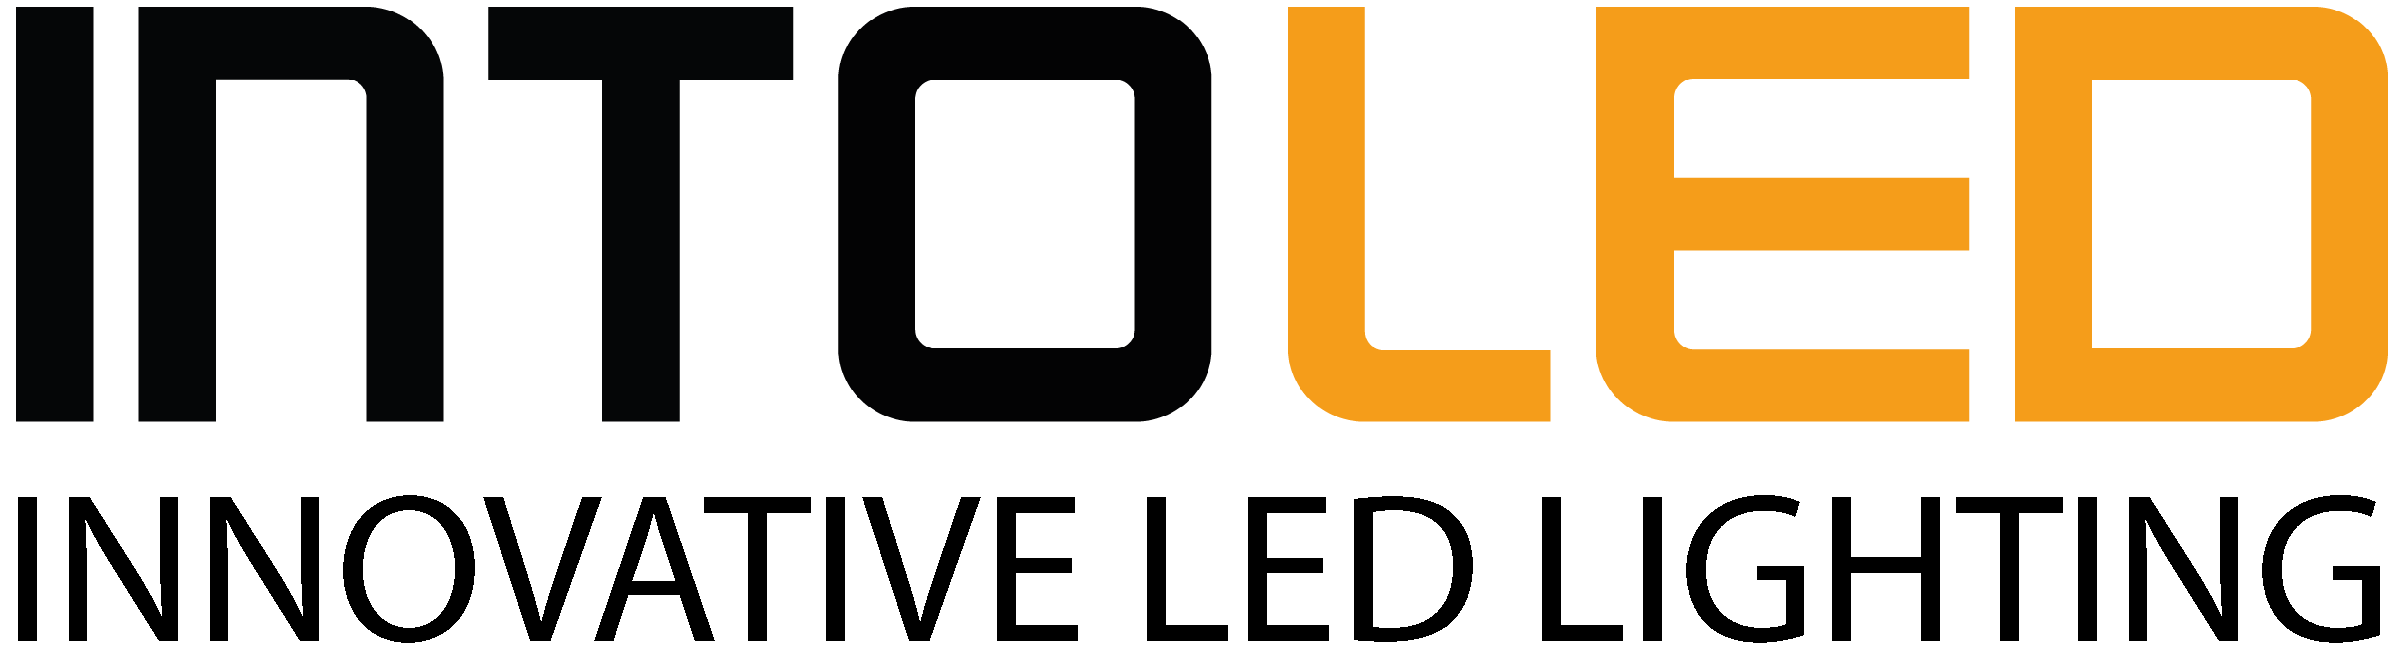 INTOLED | Innovative LED Lighting